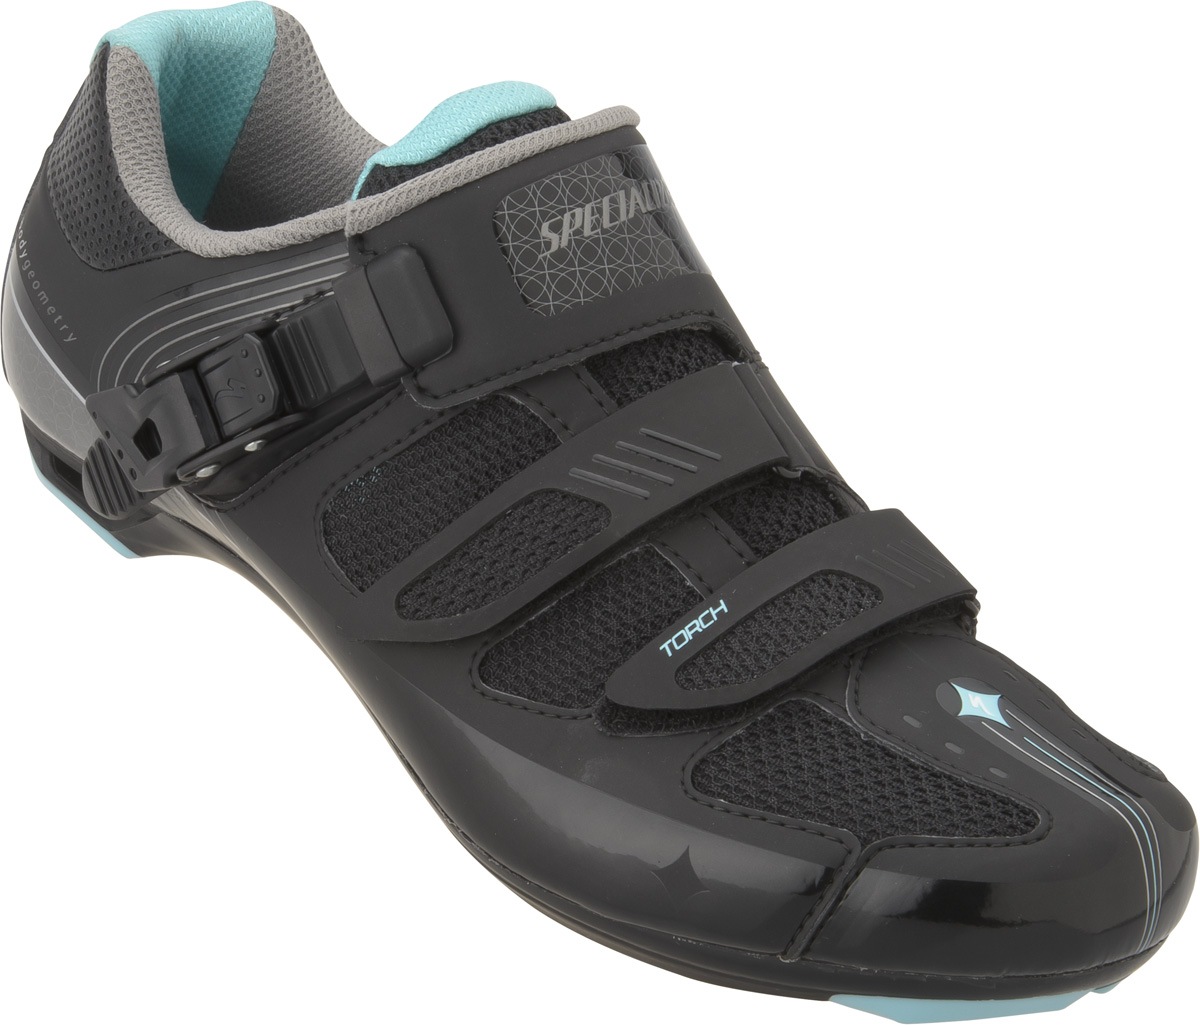 specialized-womens-torch-road-shoes-copy-180439-11.jpg